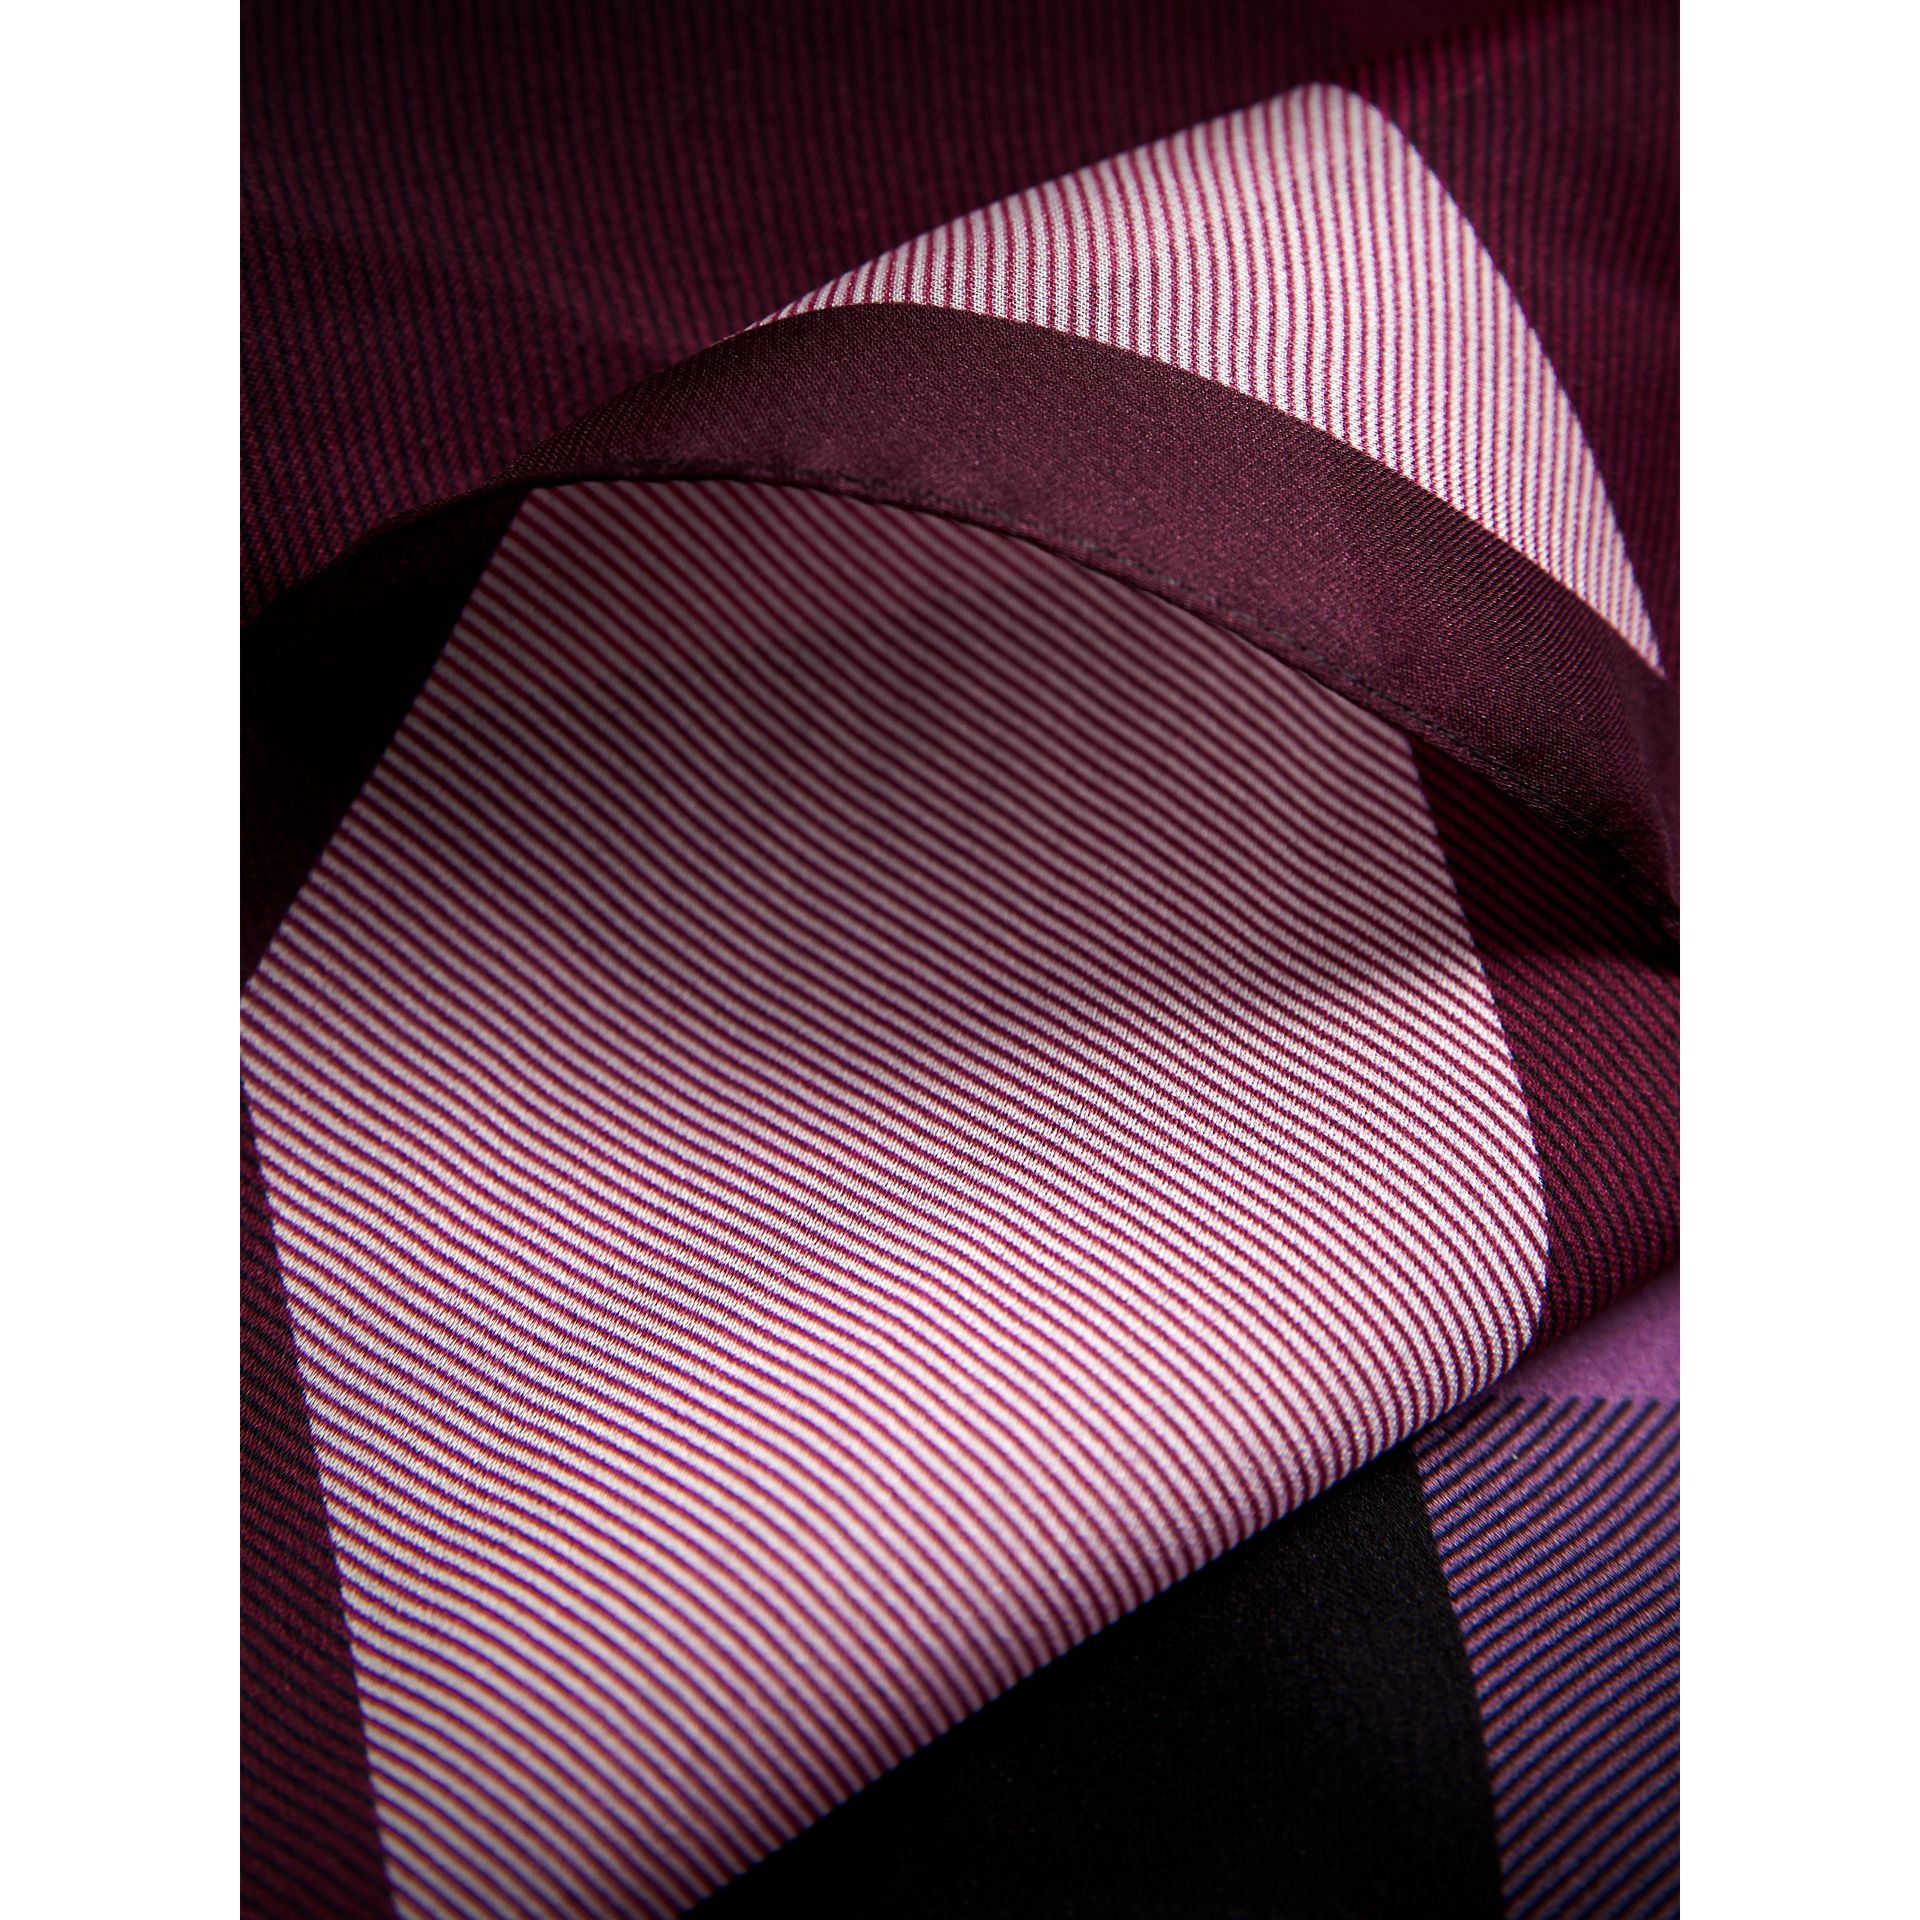 Ombré Washed Check Silk Scarf in Plum - Women | Burberry - gallery image 1